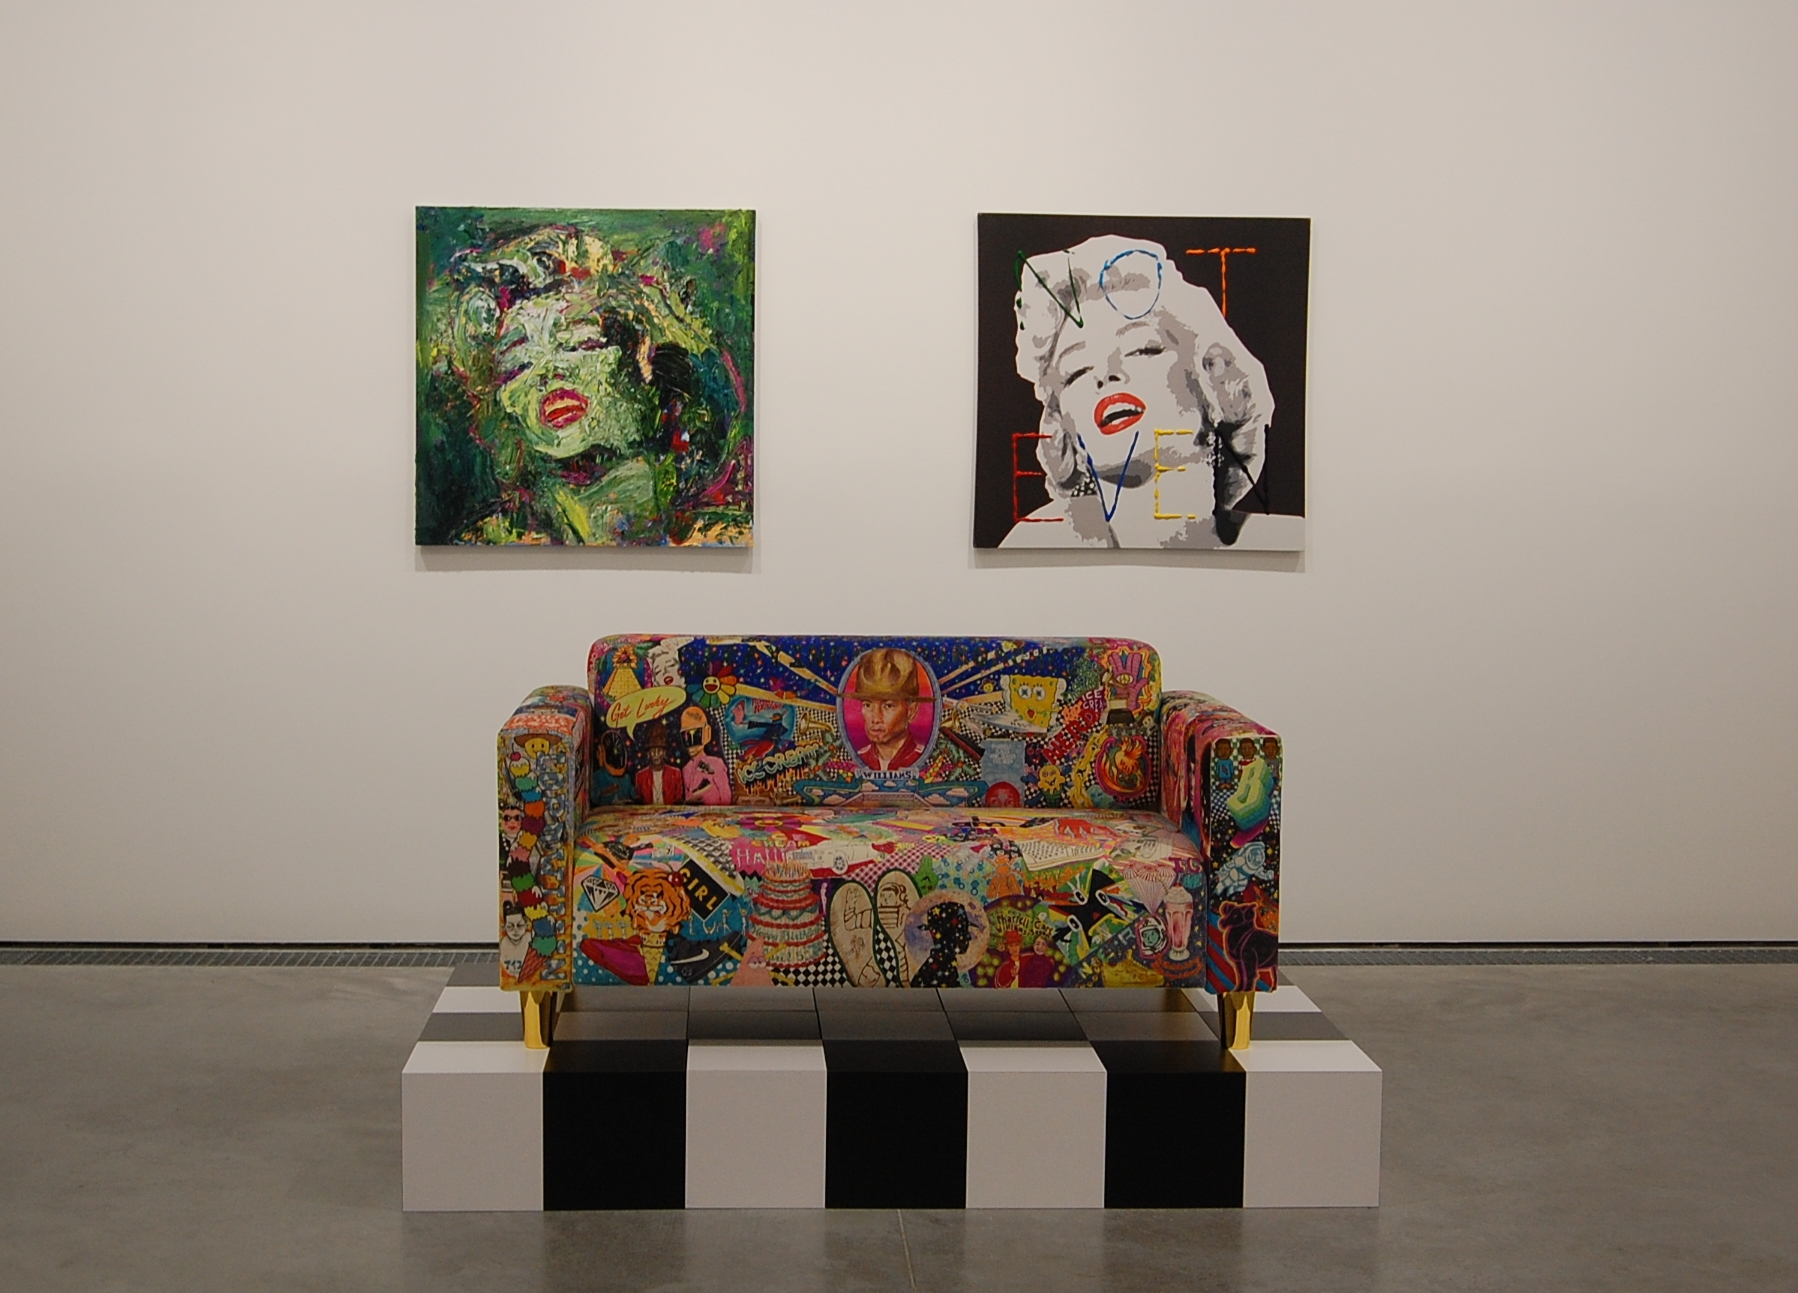 The paintings and the loveseat are by Rob Pruitt